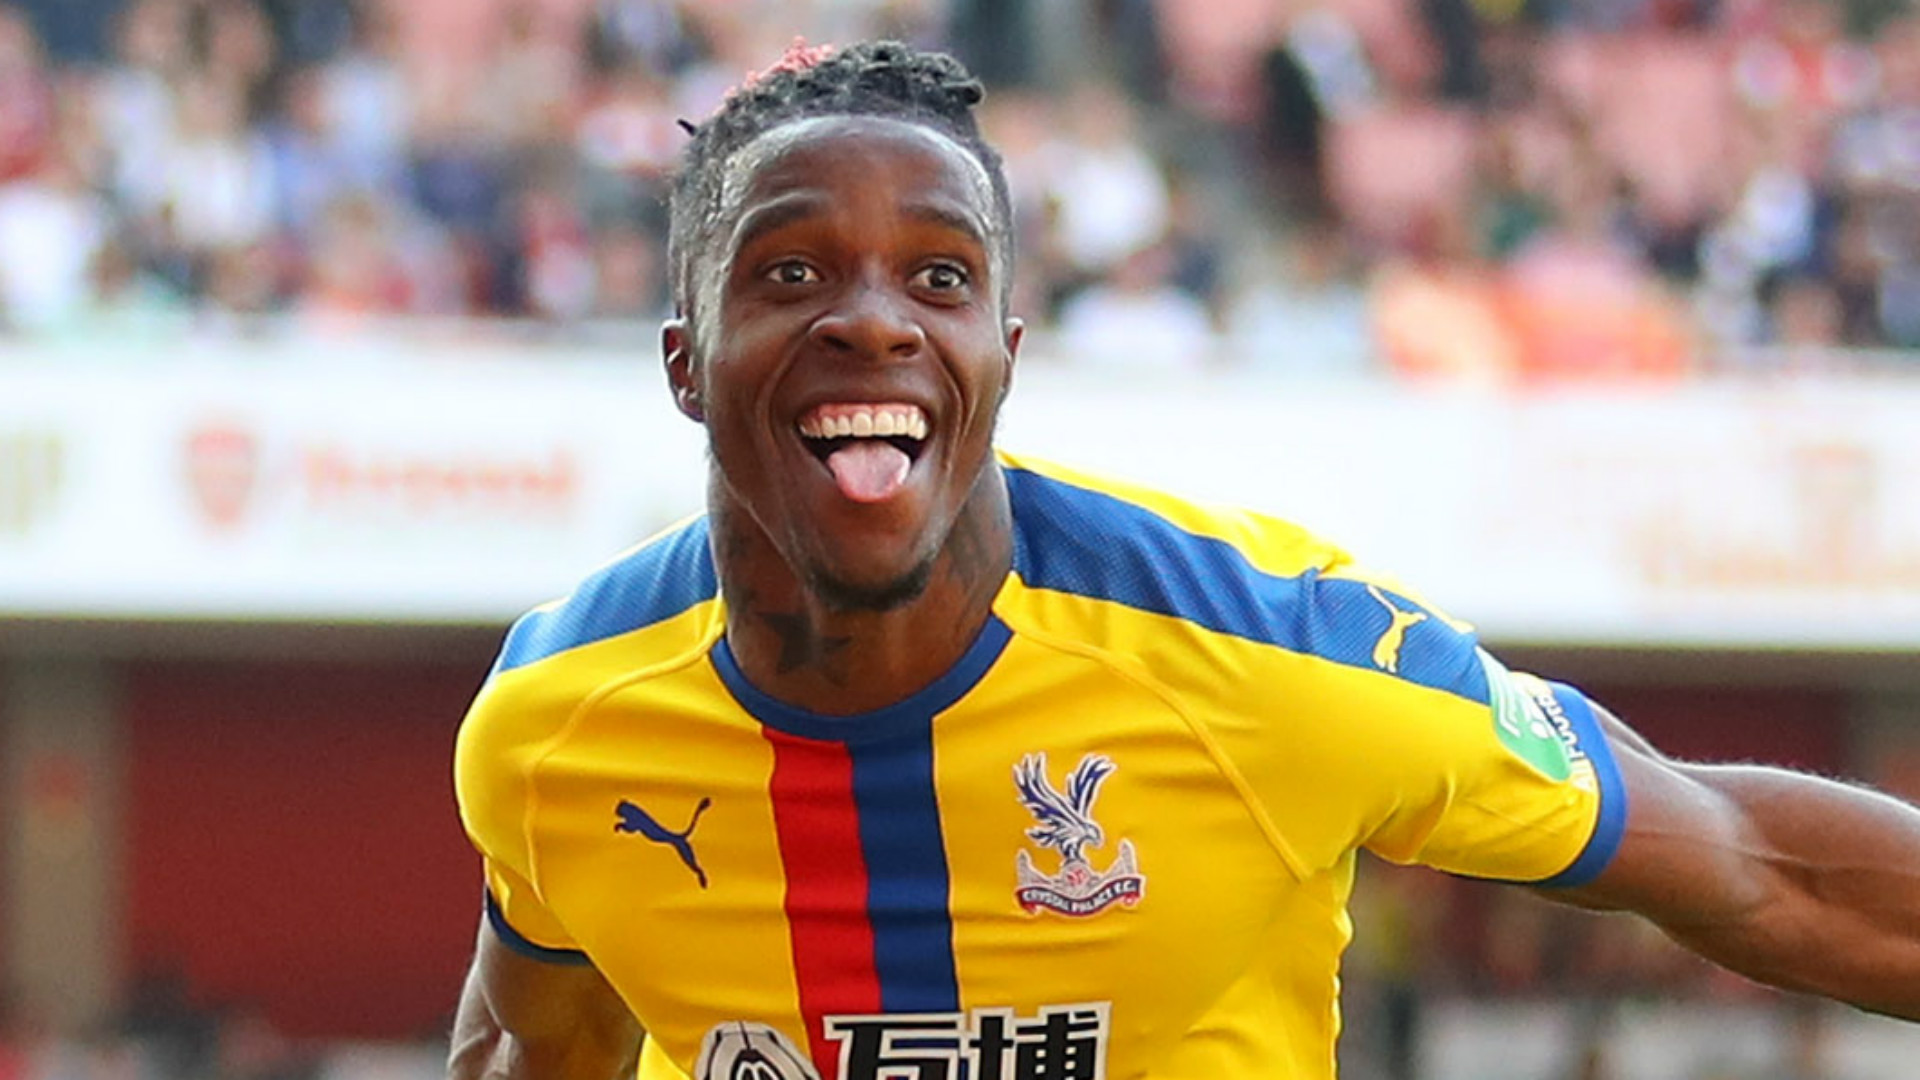 African All Stars Transfer News Rumours: Arsenal prepare player-exchange to sign Wilfried Zaha